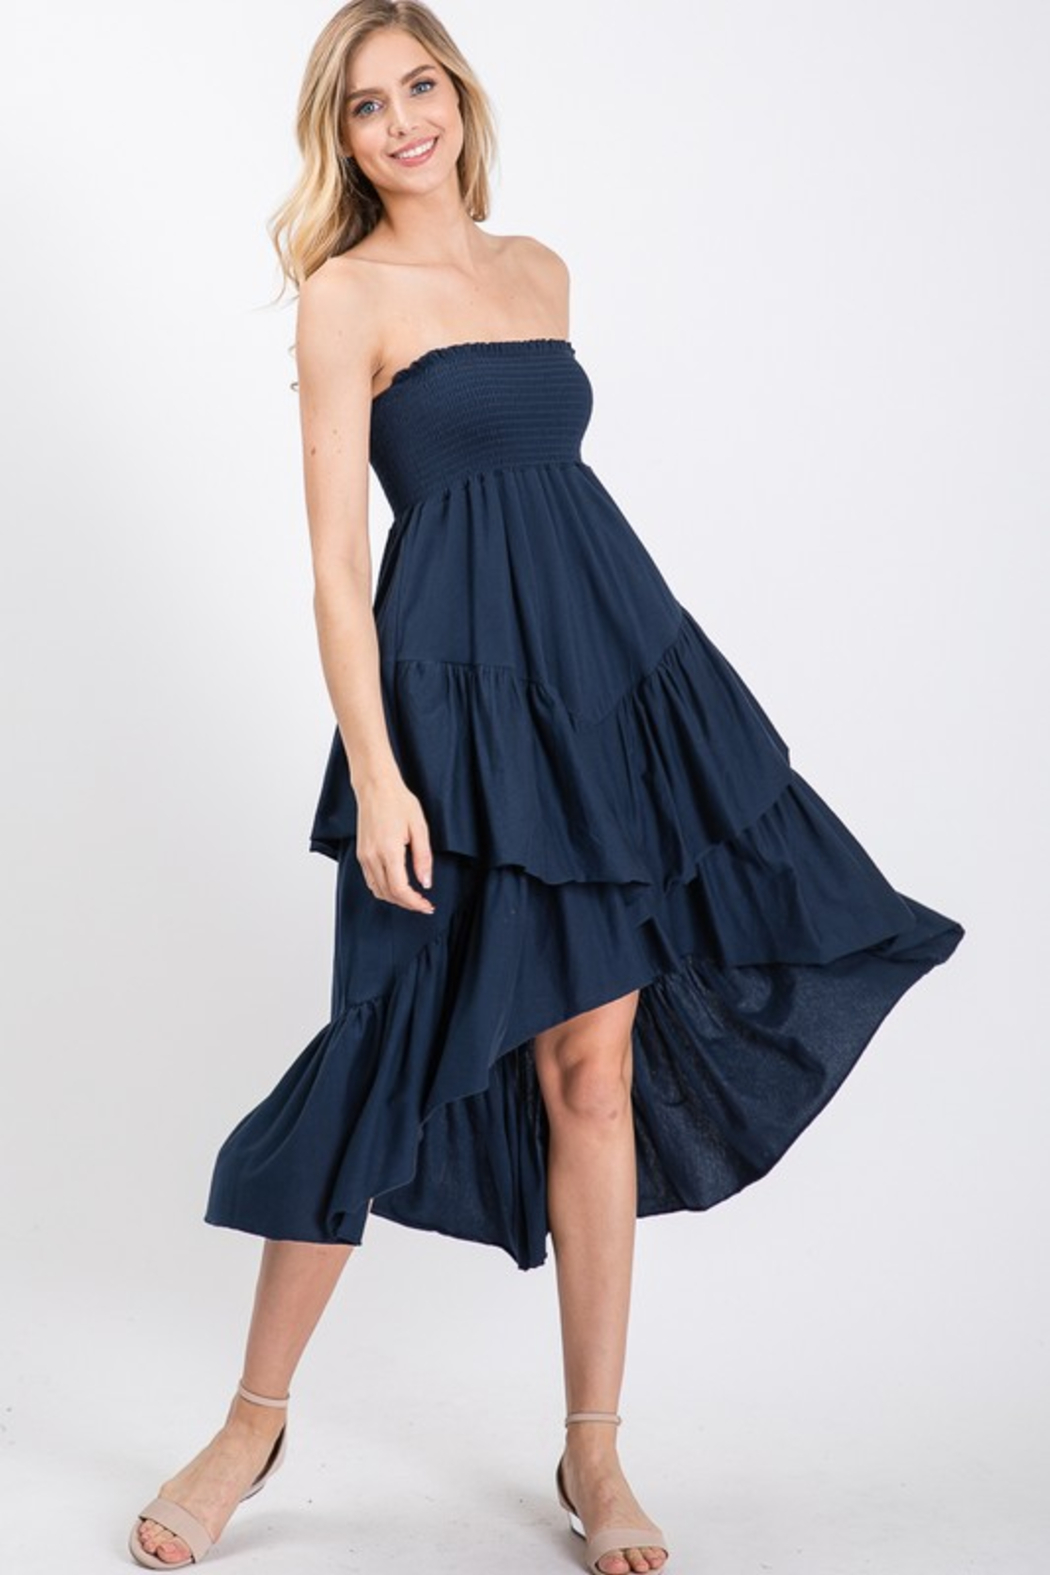 R+D Tiered Smock Dress - Main Image